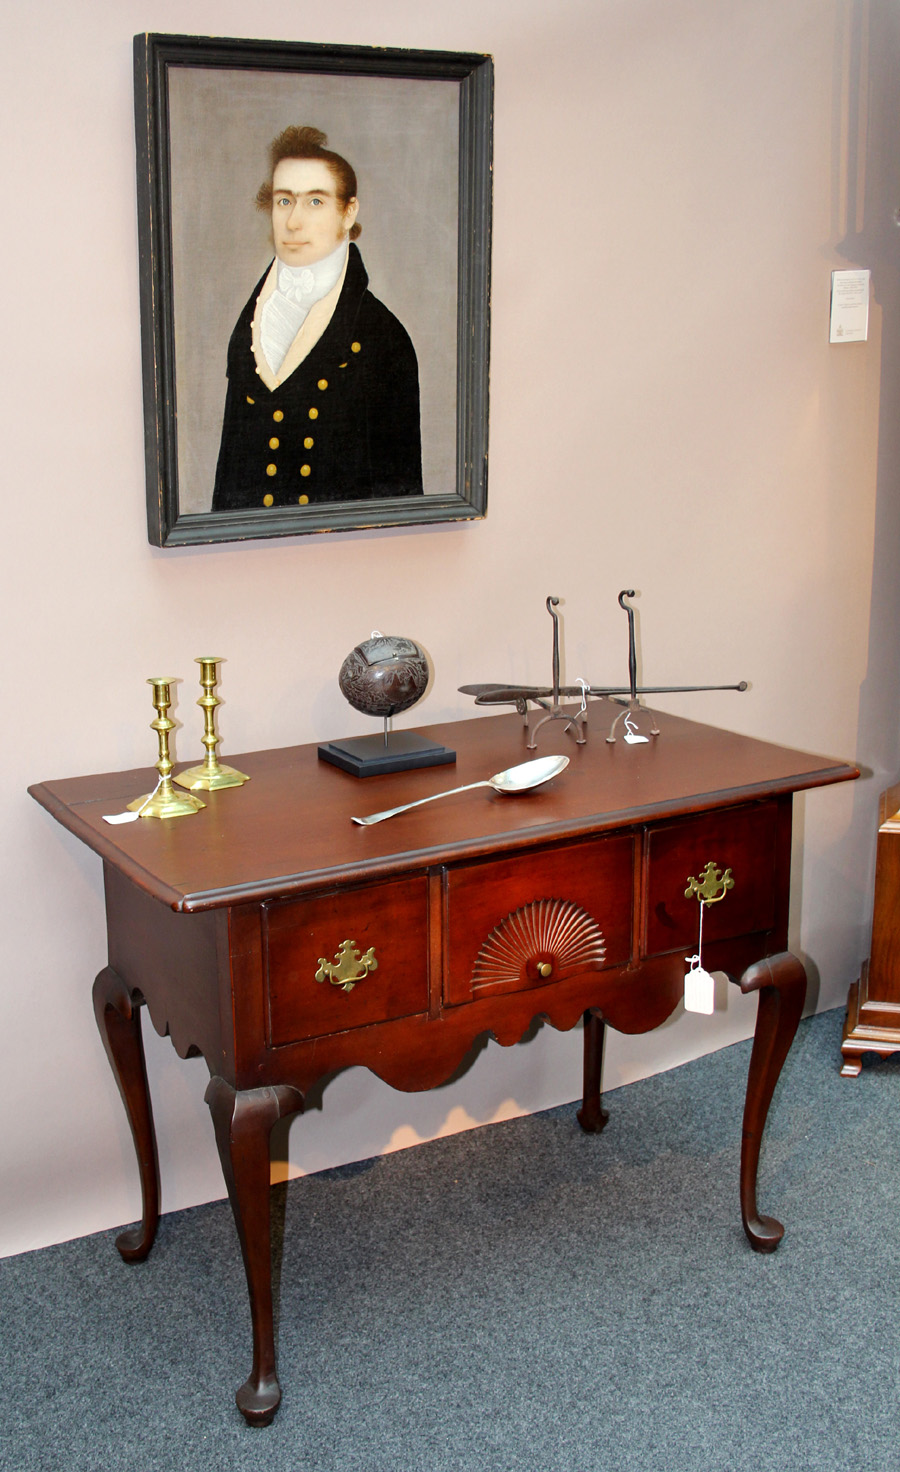 Big sales at Nathan Liverant and Son, Colchester, Conn., included the Connecticut Queen Anne cherry server with sunburst-carved center drawer and silver basting spoon by Joseph Copp, active in New London, Conn., between 1757 and 1776. Above is a portrait by Martha's Vineyard painter Frederick Mayhew.